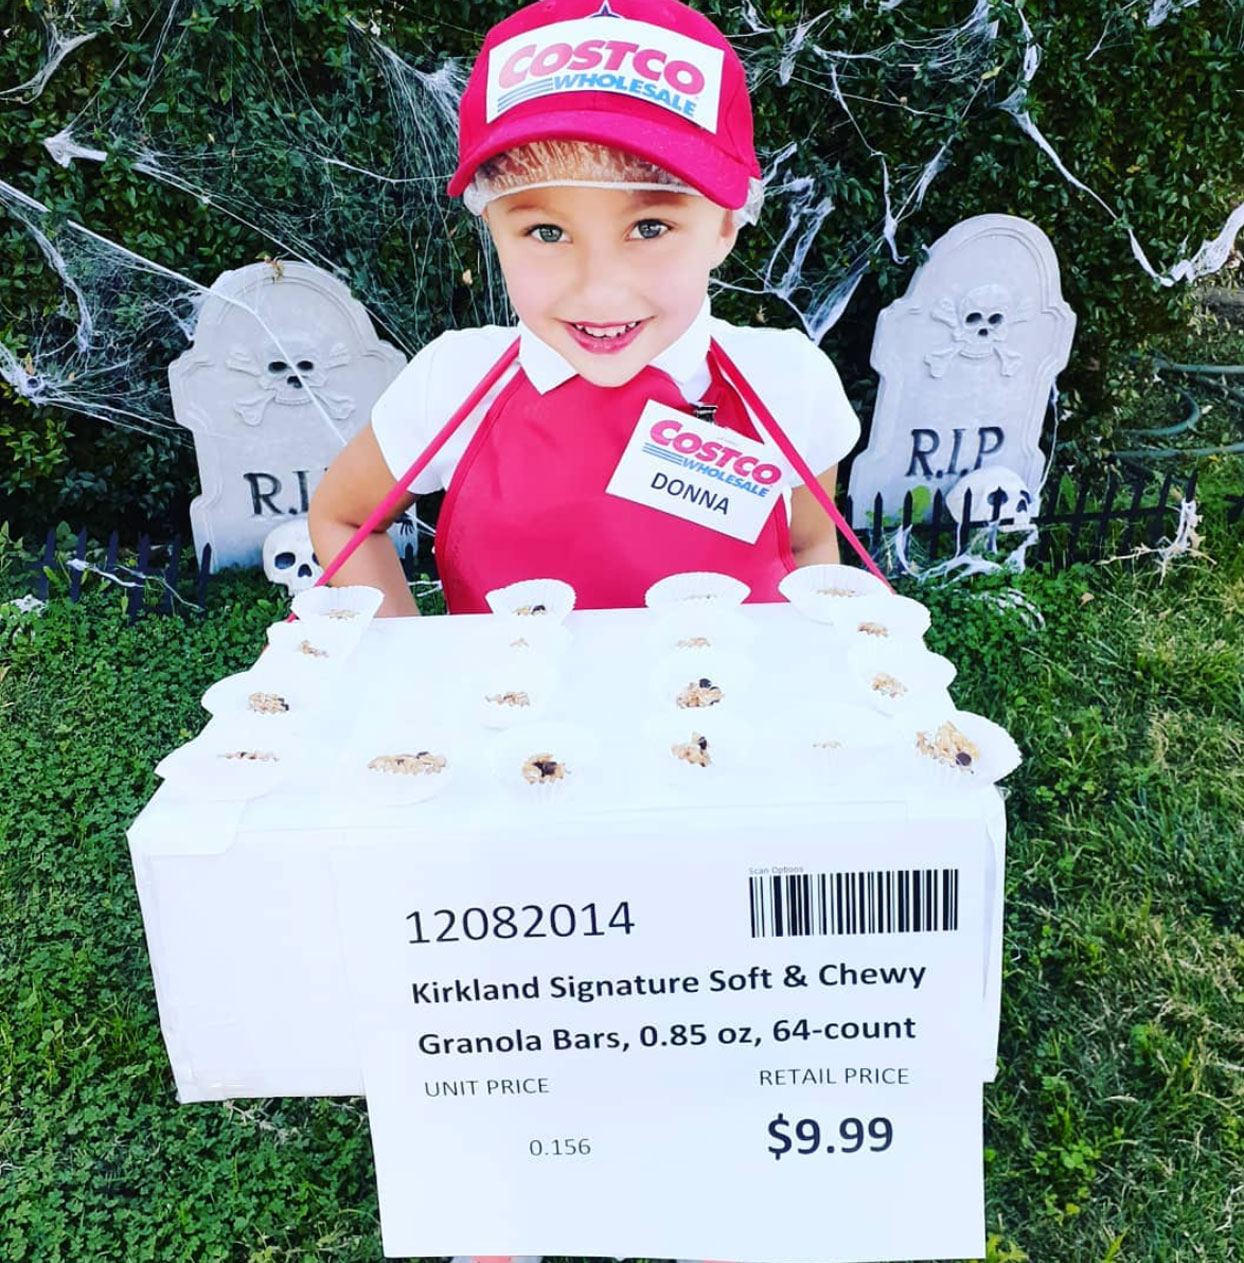 kid dressed as a costco sample person